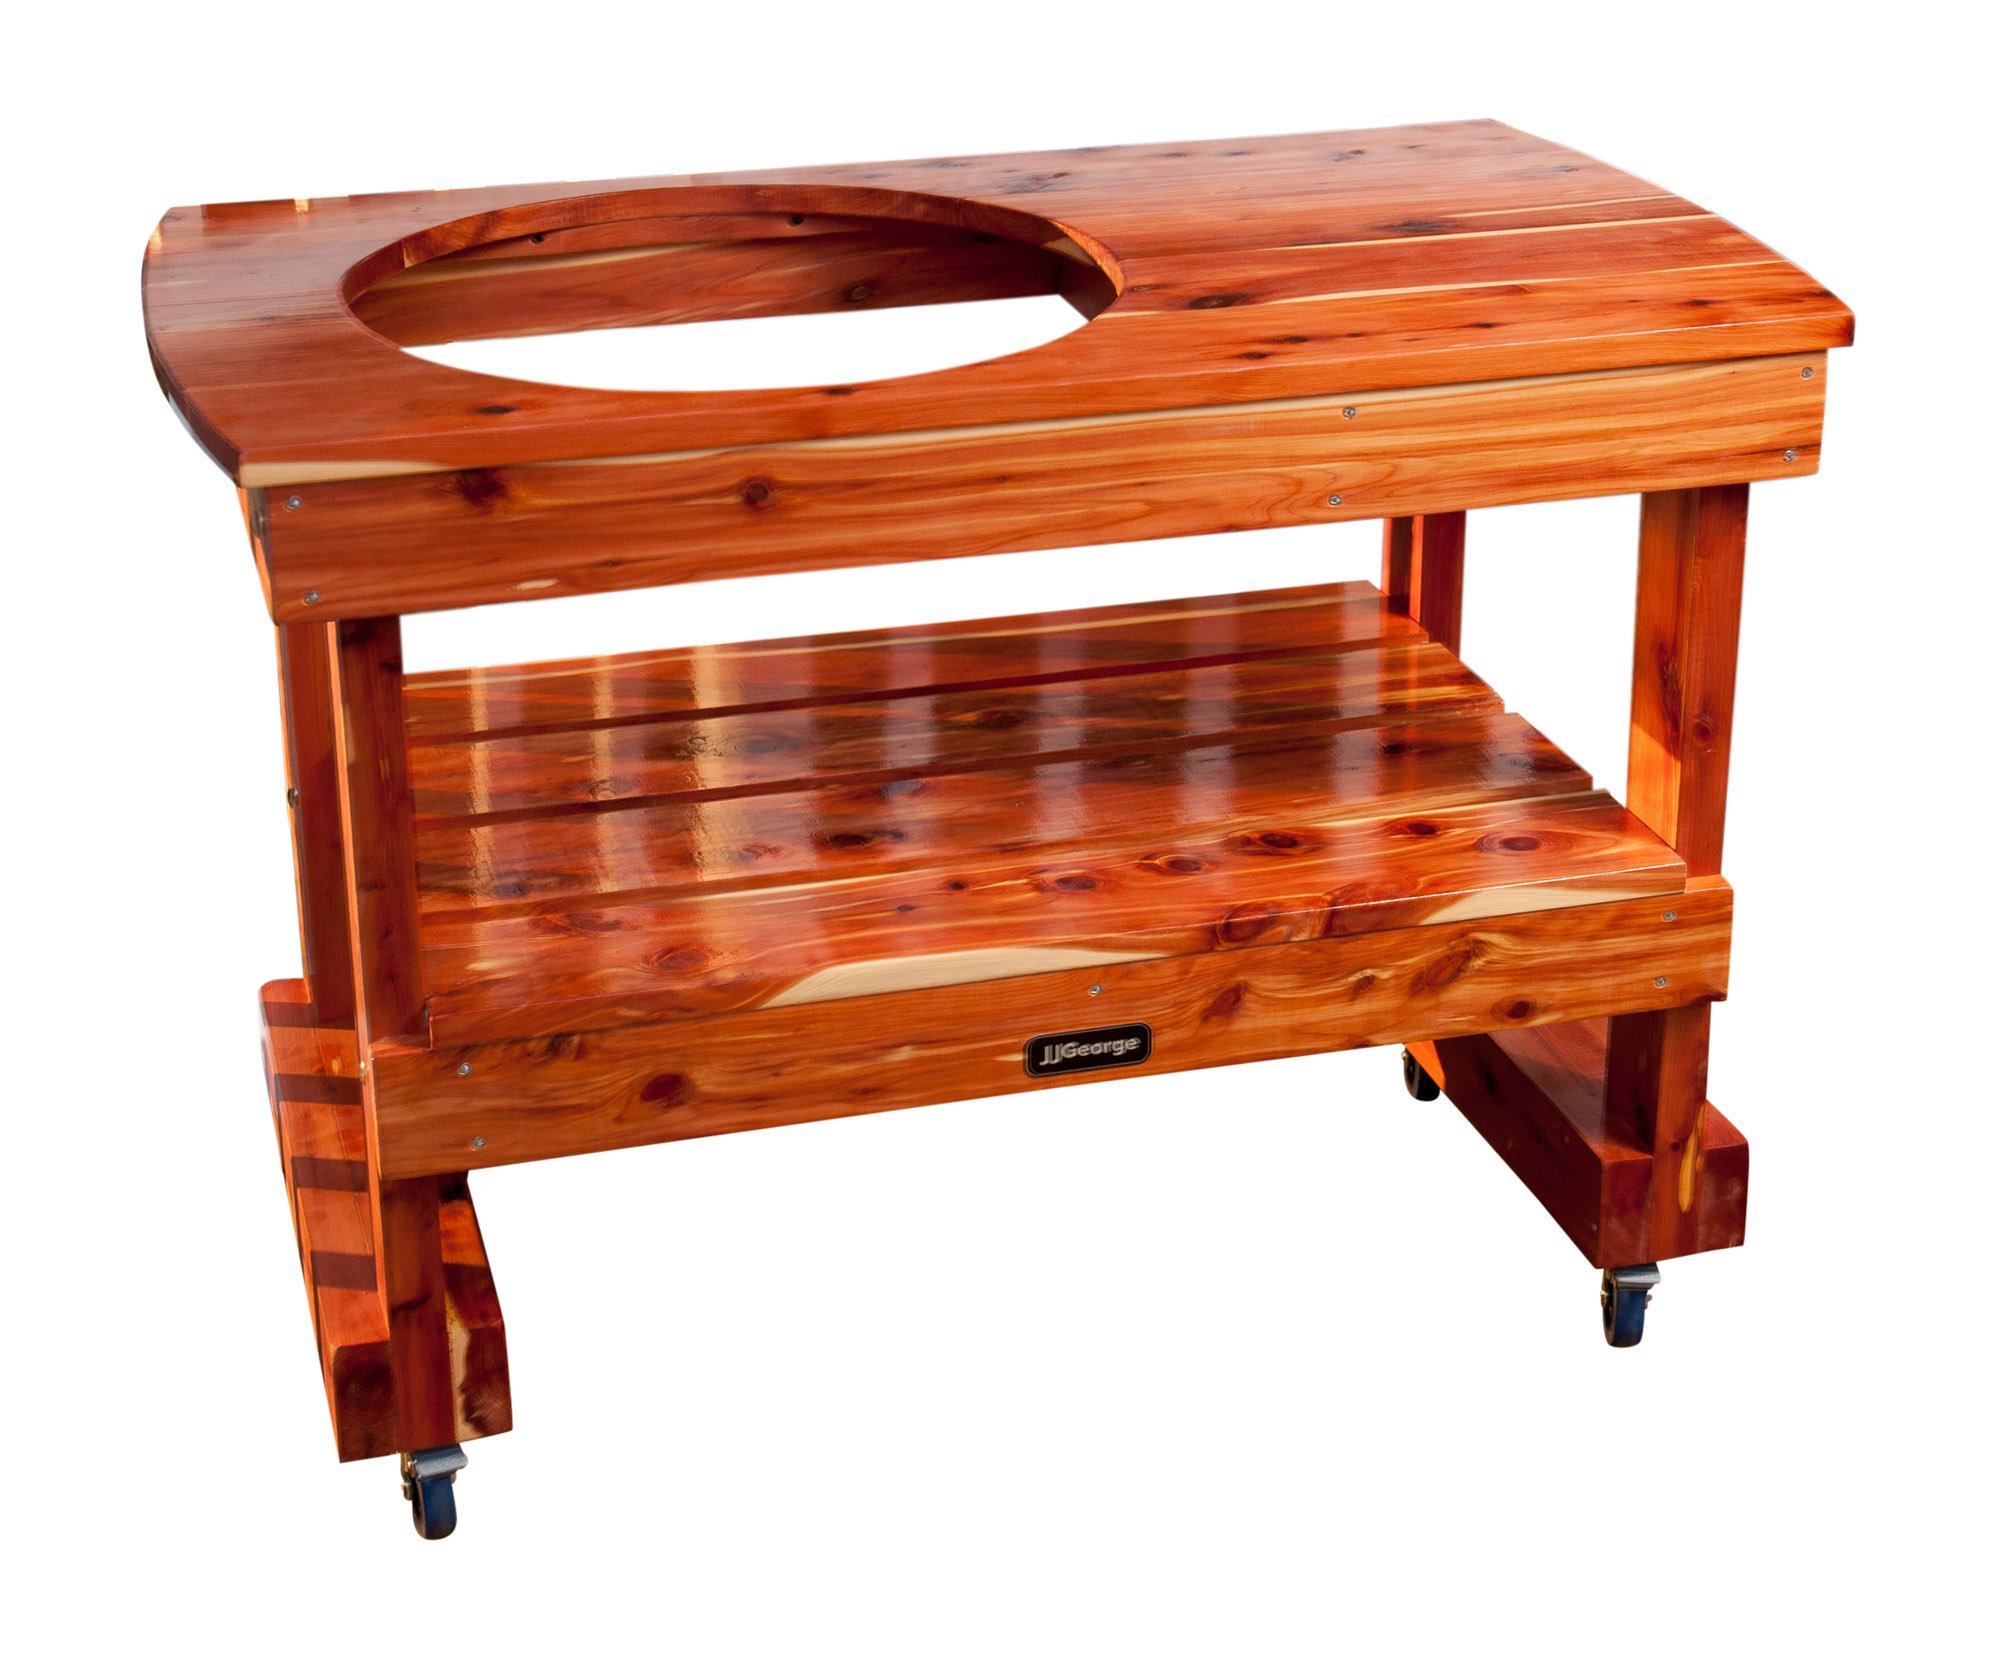 JJ George Big Green Egg Table (Compact Table for Large Green Egg) Table Cover Included